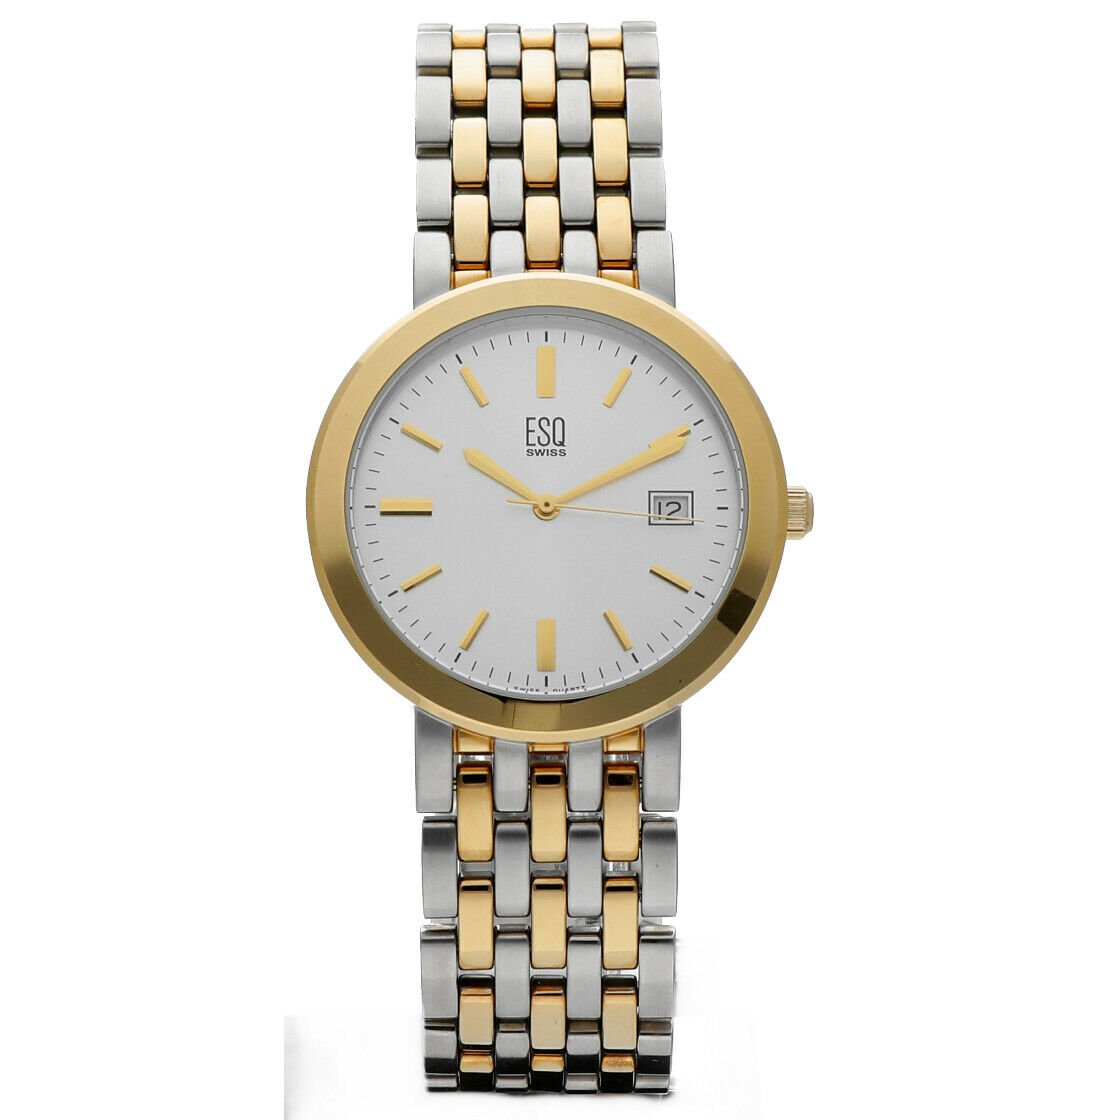 ESQ Swiss E5199 Classic Two Tone Stainless Steel 35mm Quartz Wrist Watch 114324562983